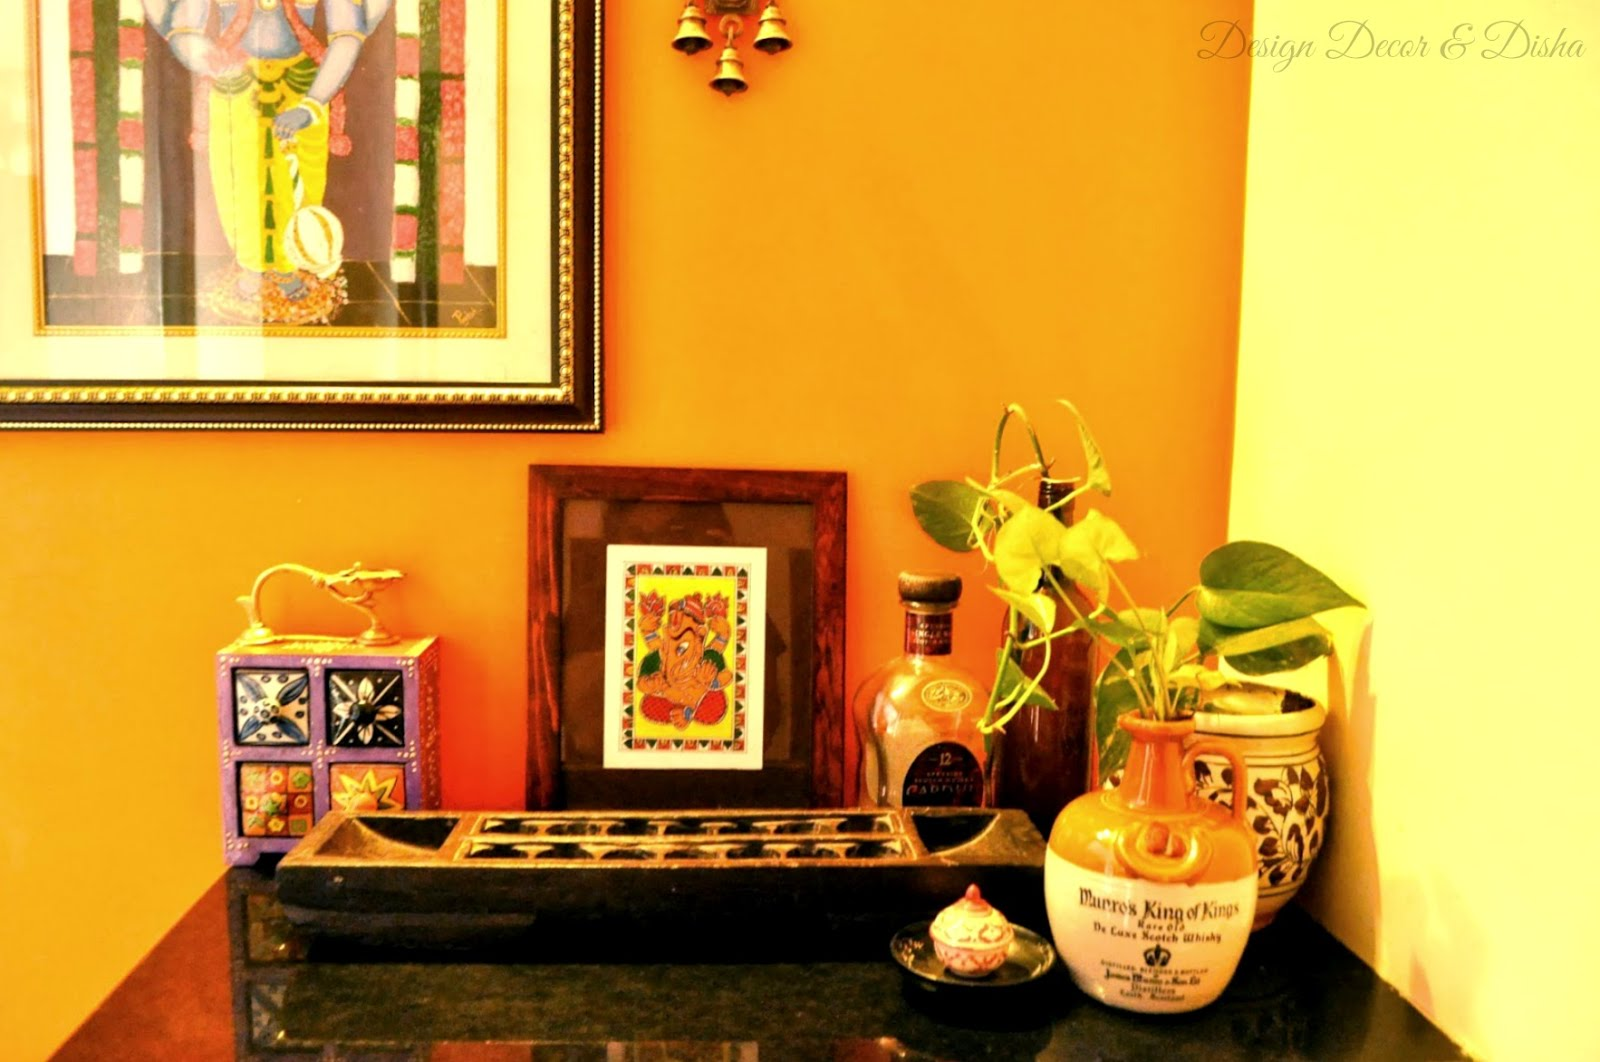 Design Decor & Disha | An Indian Design & Decor Blog: Home Tour ...